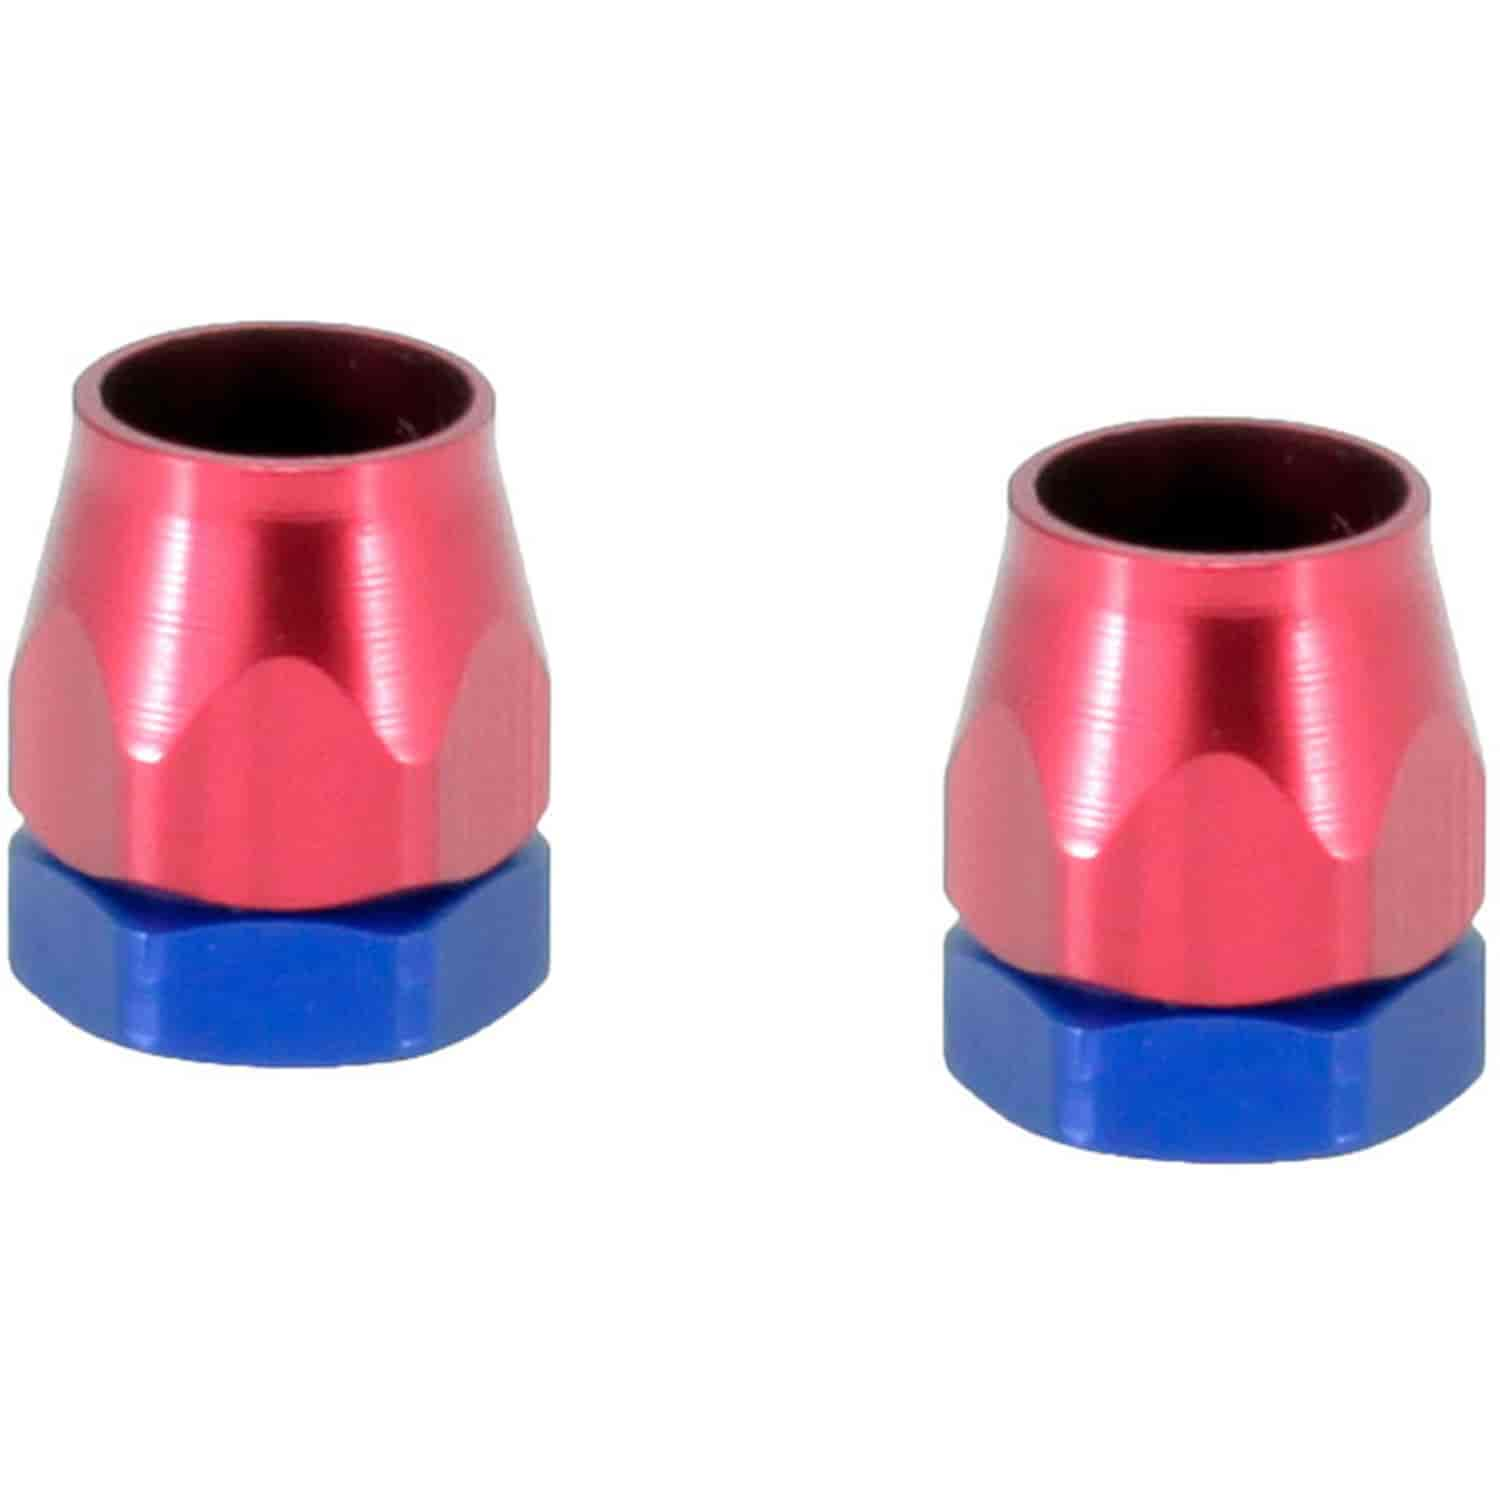 Spectre 1260 - Spectre Magna-Clamp Hose Fittings